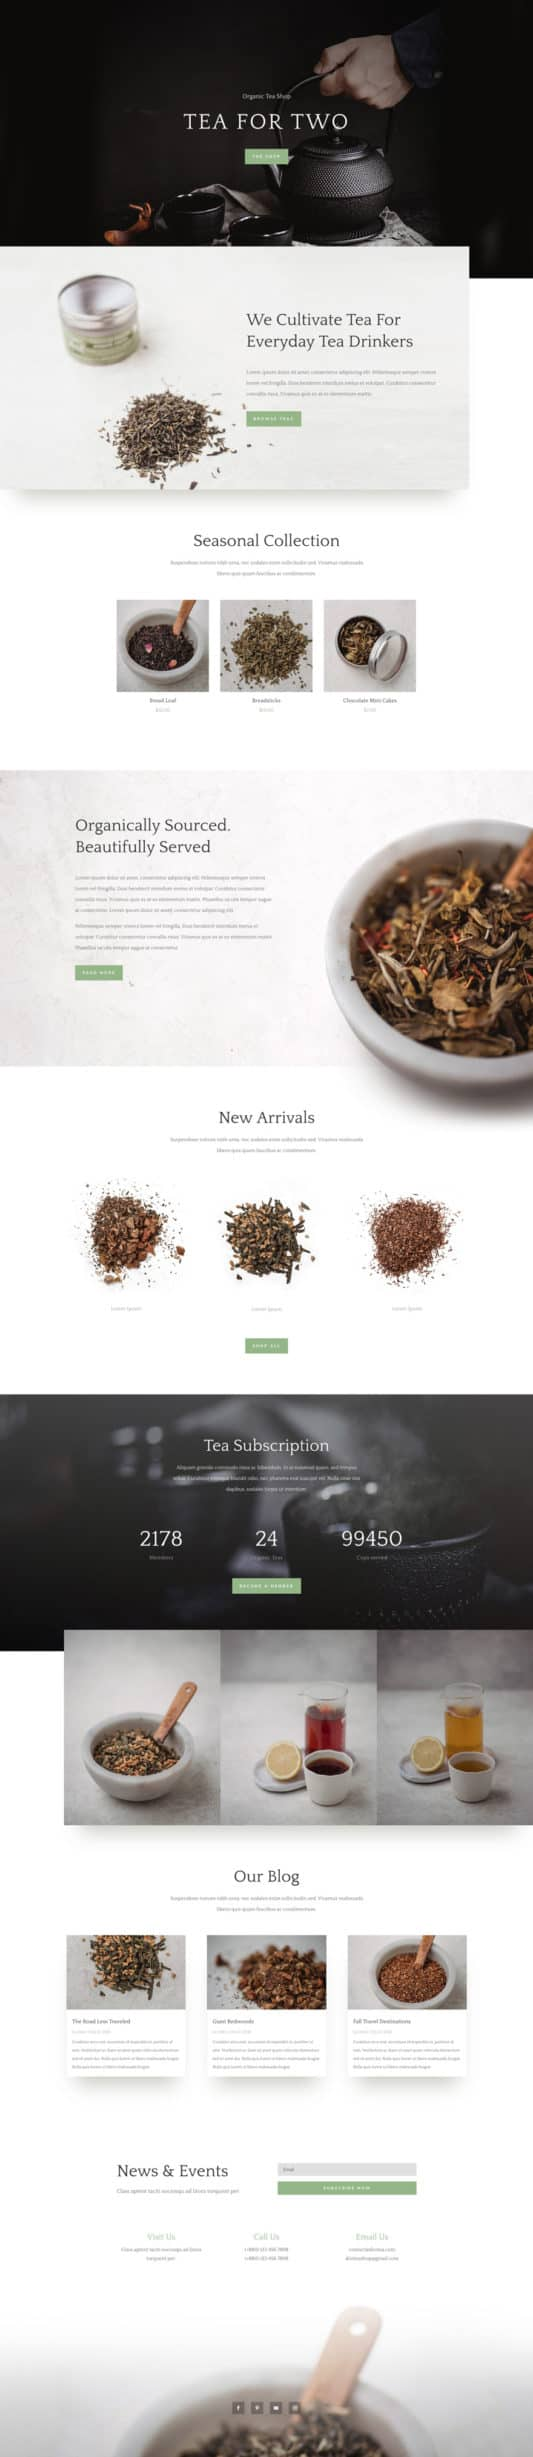 The Tea Shop Page Style: Homepage Design 1